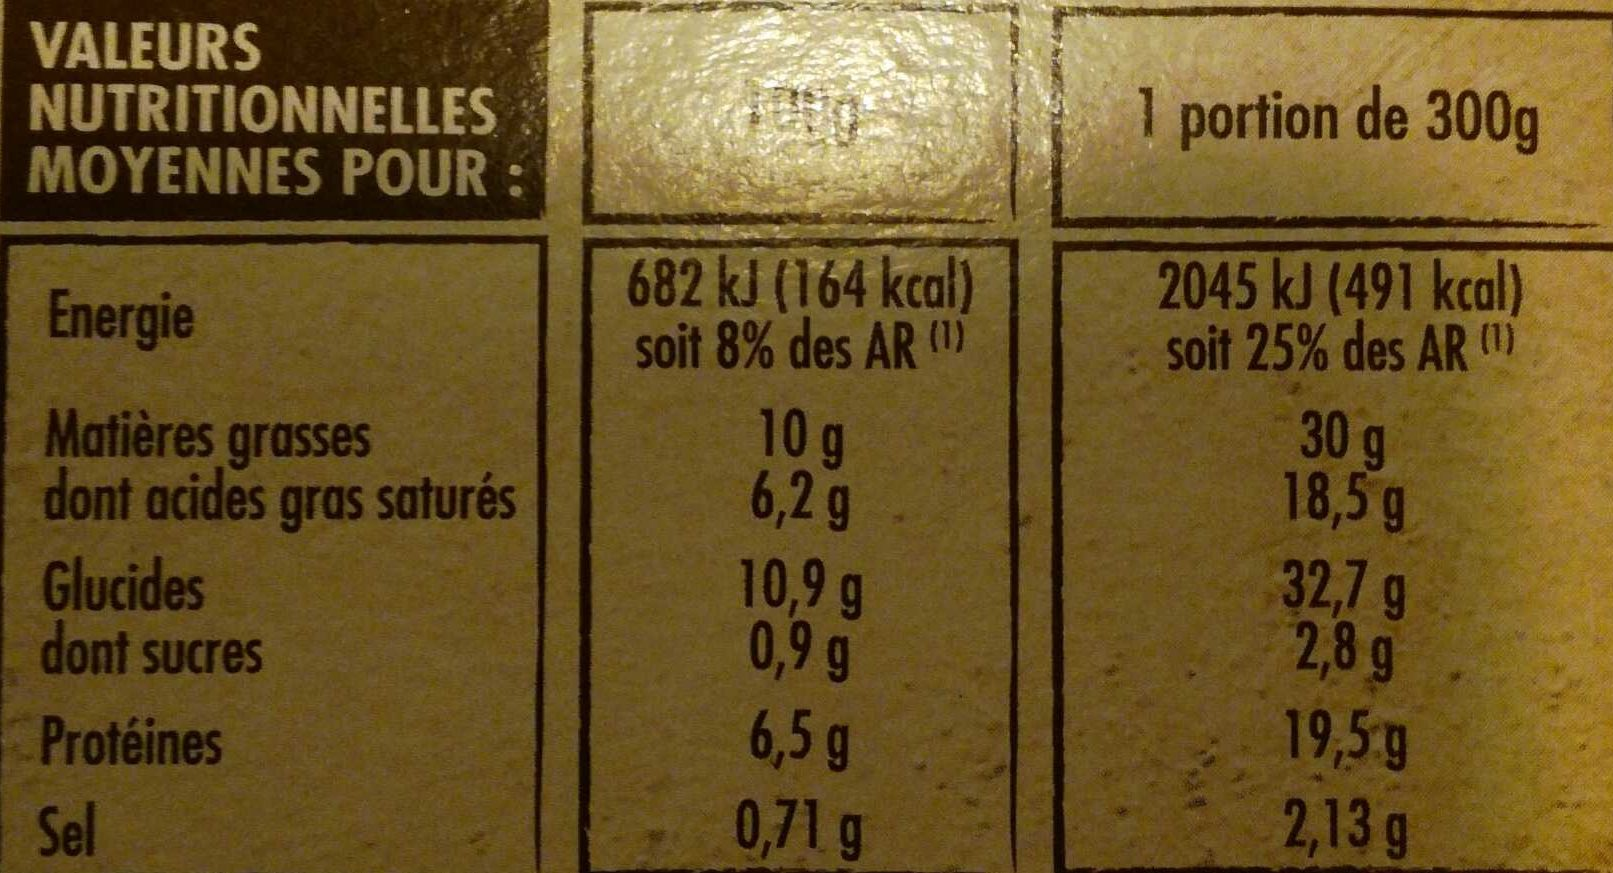 Tartiflette au reblochon de savoie label rouge - Nutrition facts - fr